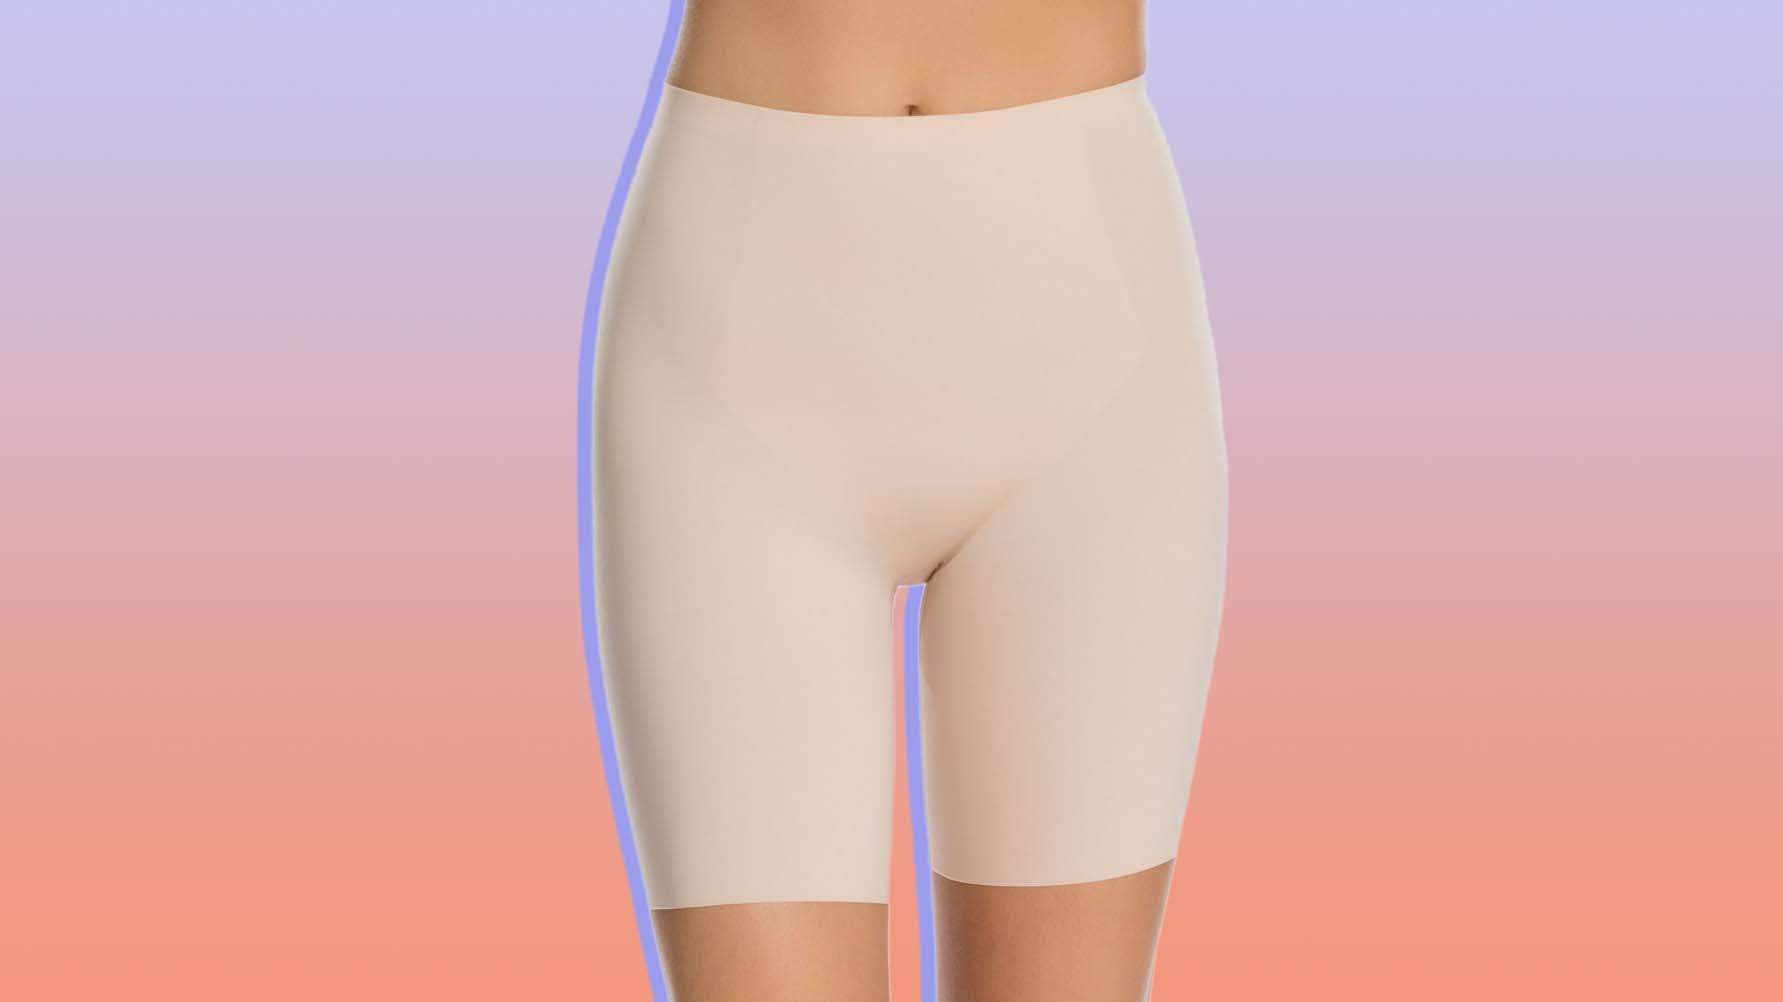 Spanx Shapewear  Outlet Free Delivery Code 2020